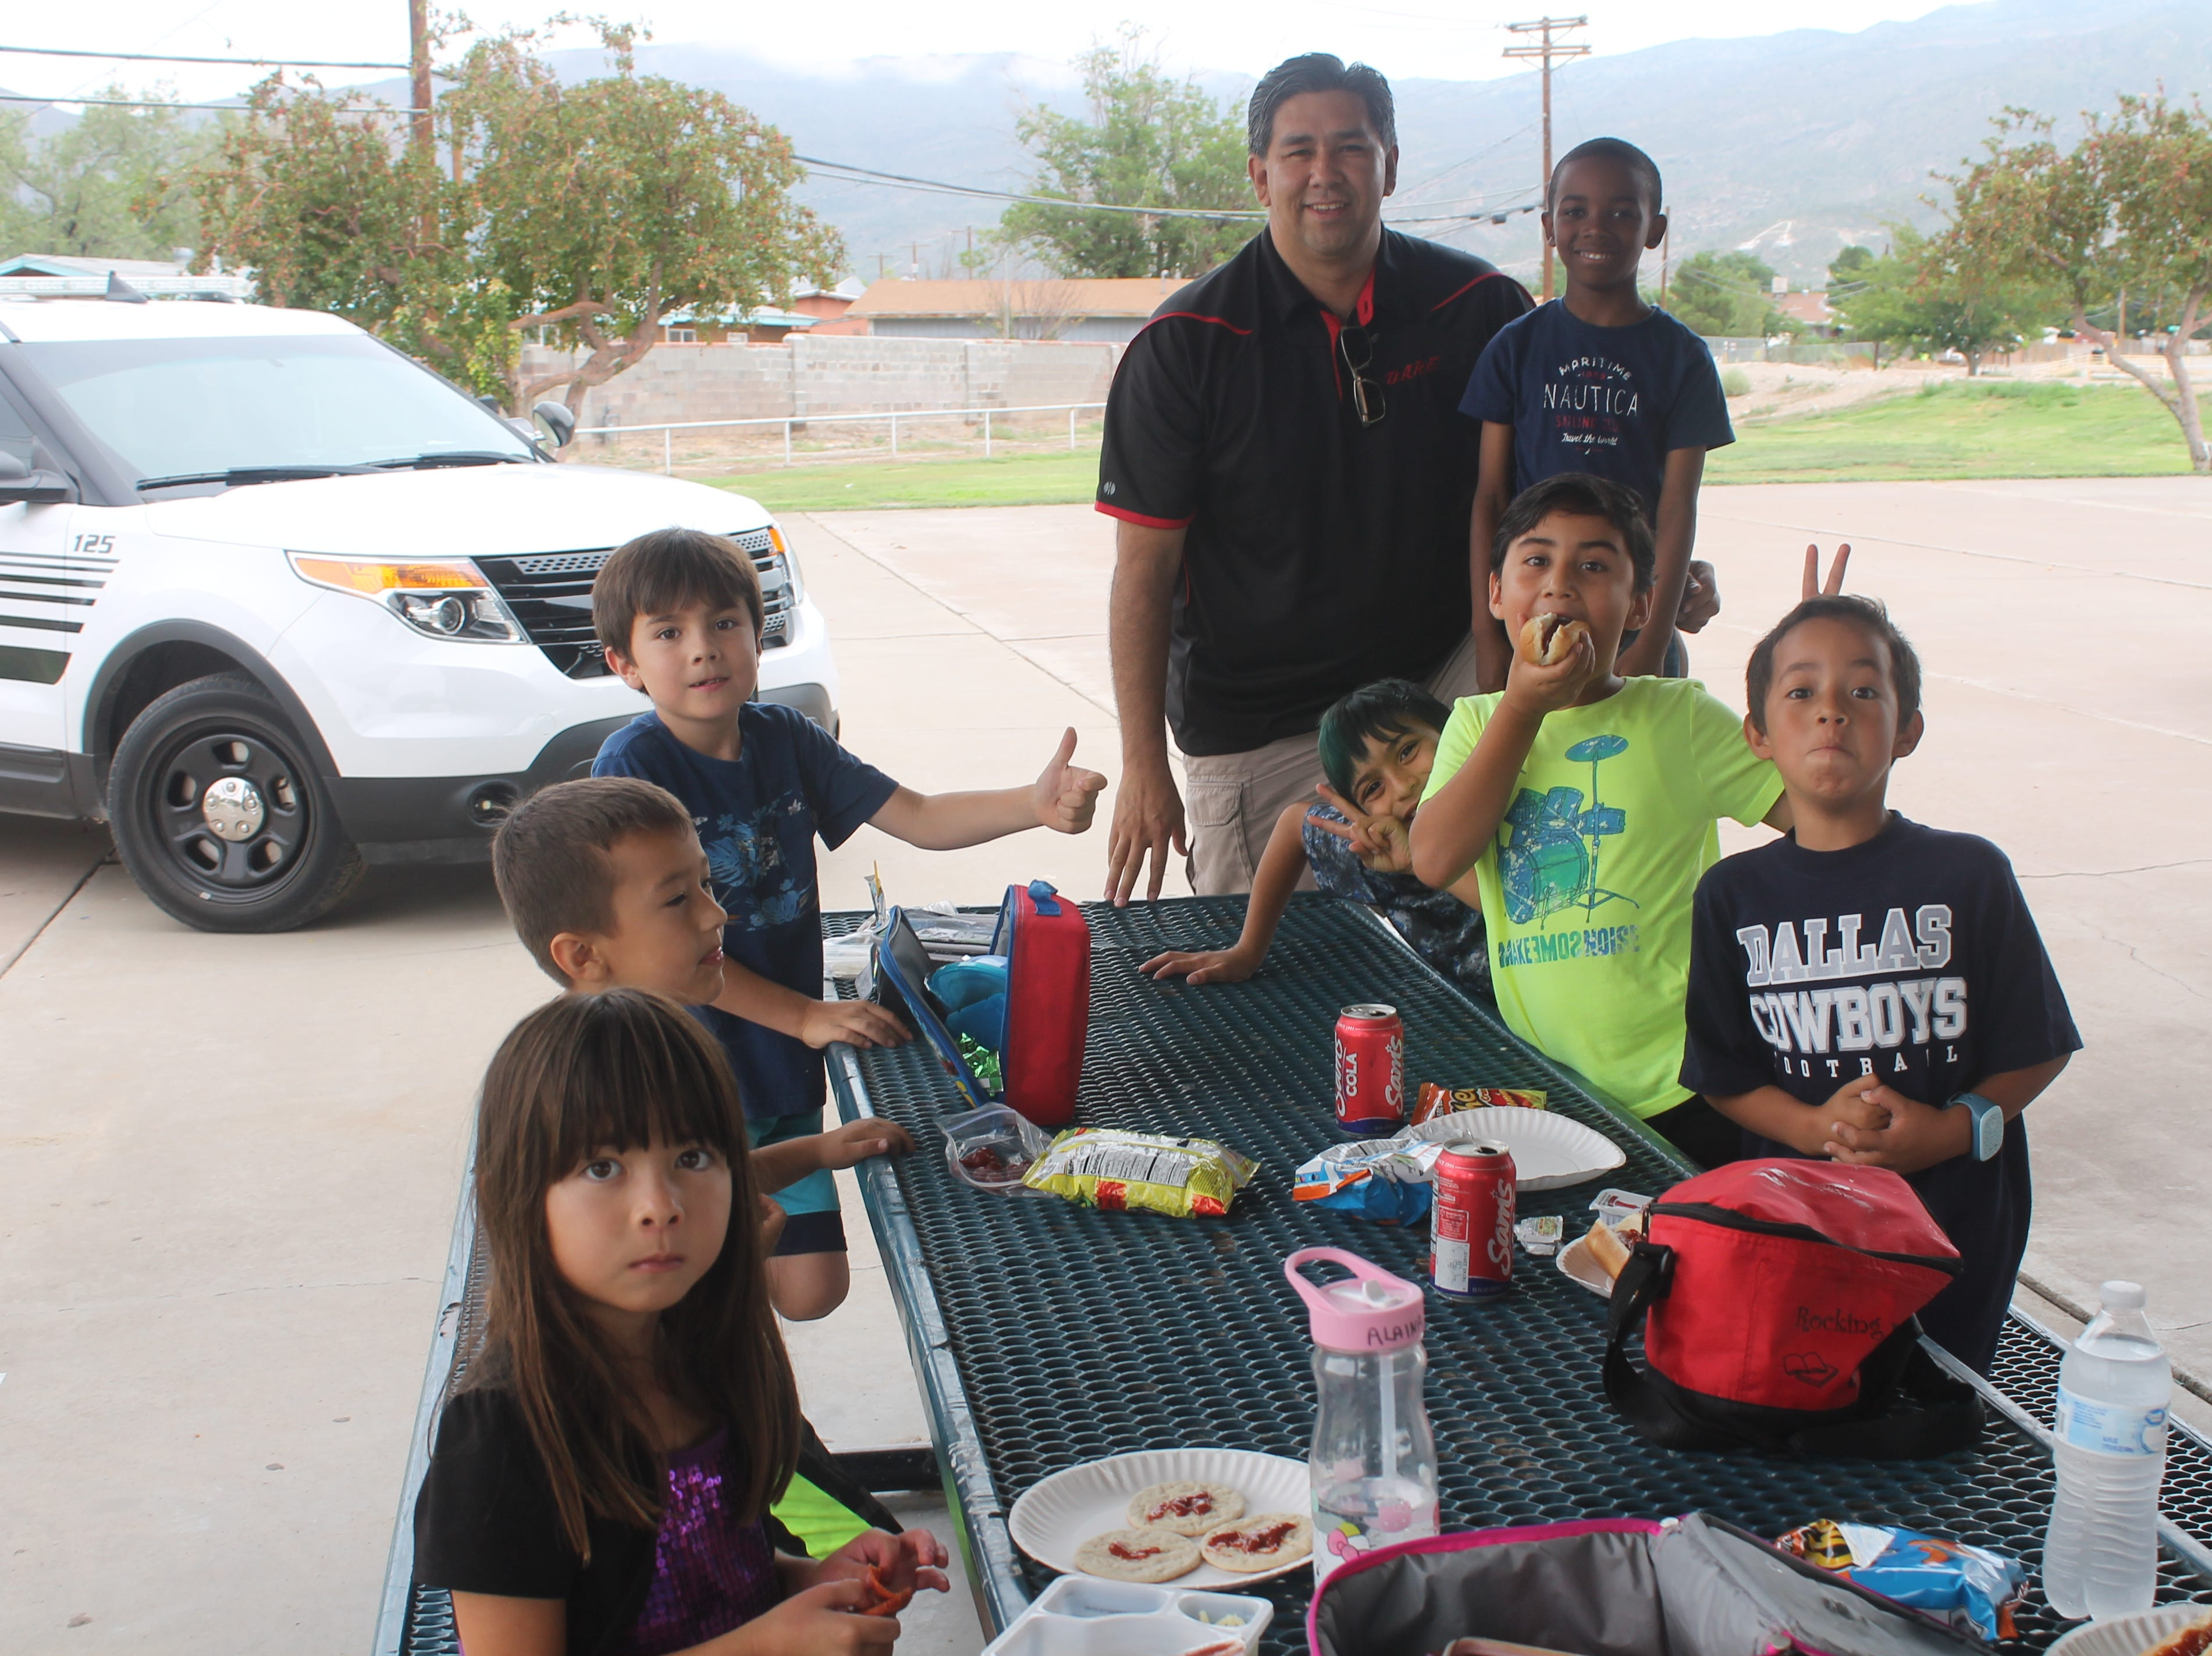 APD officer James McGuinn poses with some Boys and Girls club campers as they chow down.